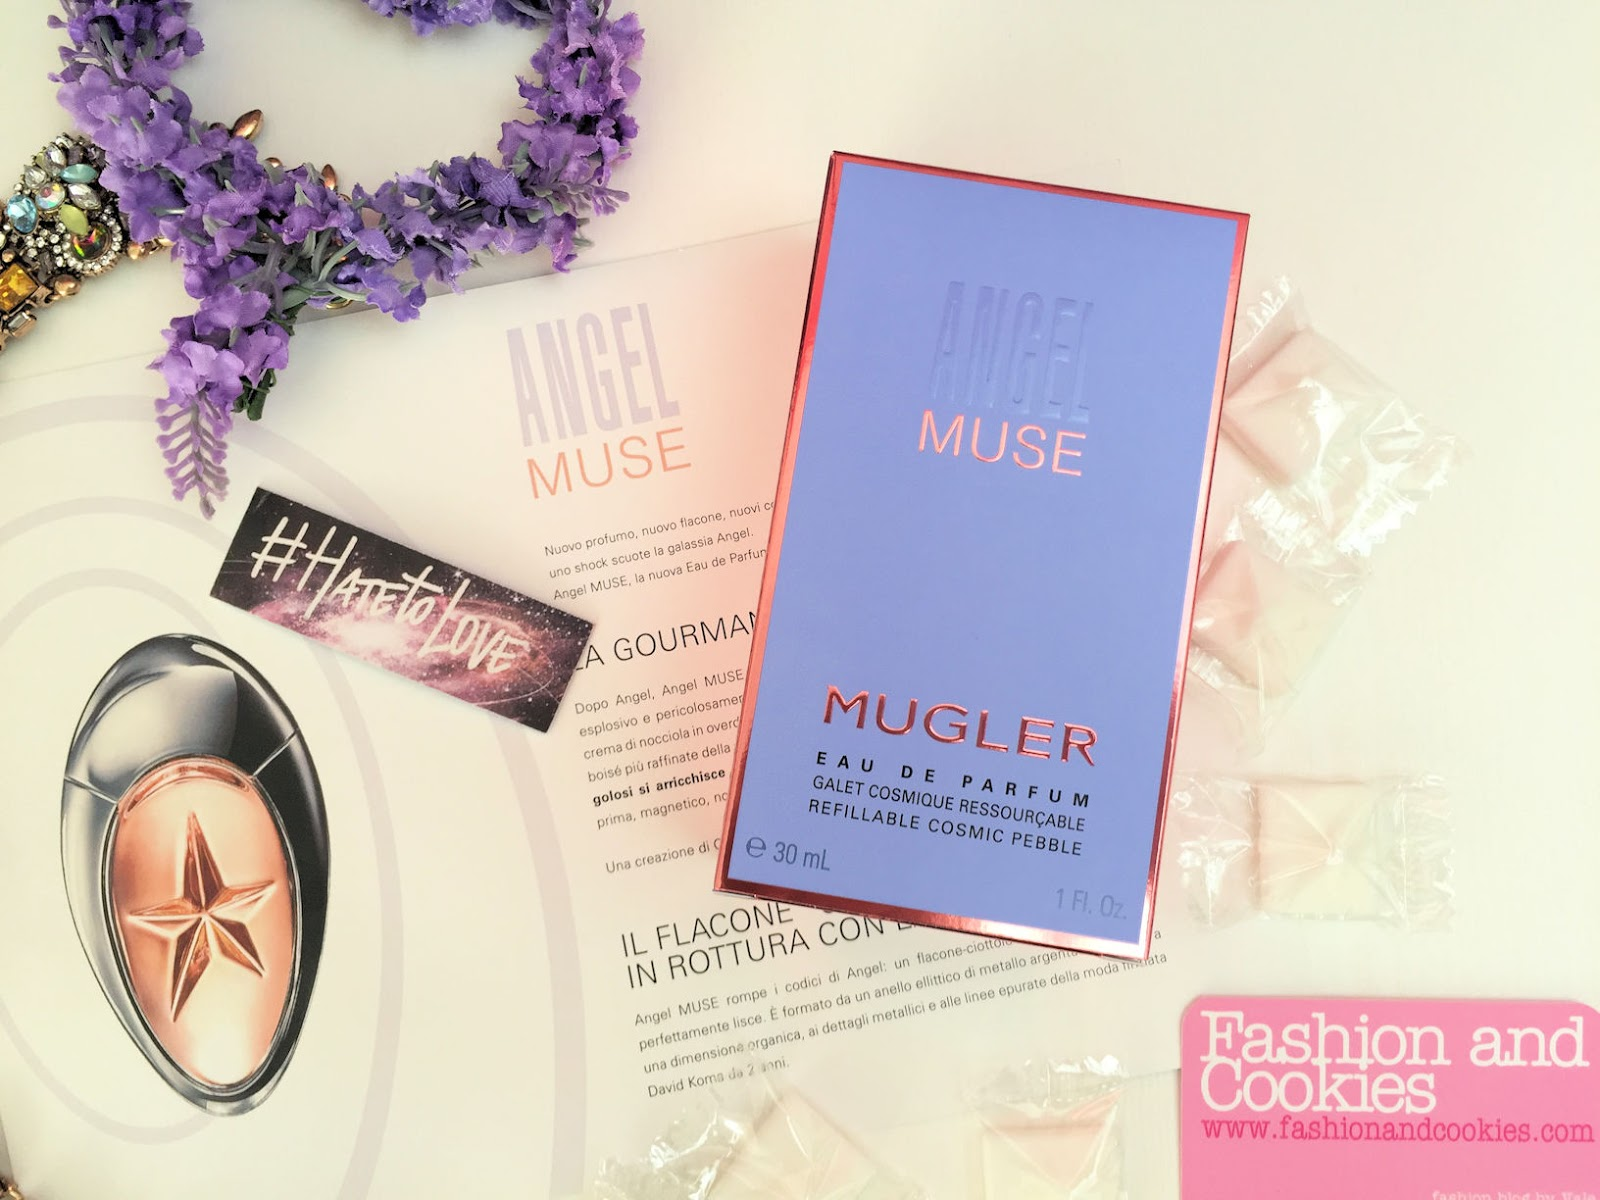 Angel Muse Eau de Parfum by Thierry Mugler on Fashion and Cookies fashion and beauty blog, beauty blogger